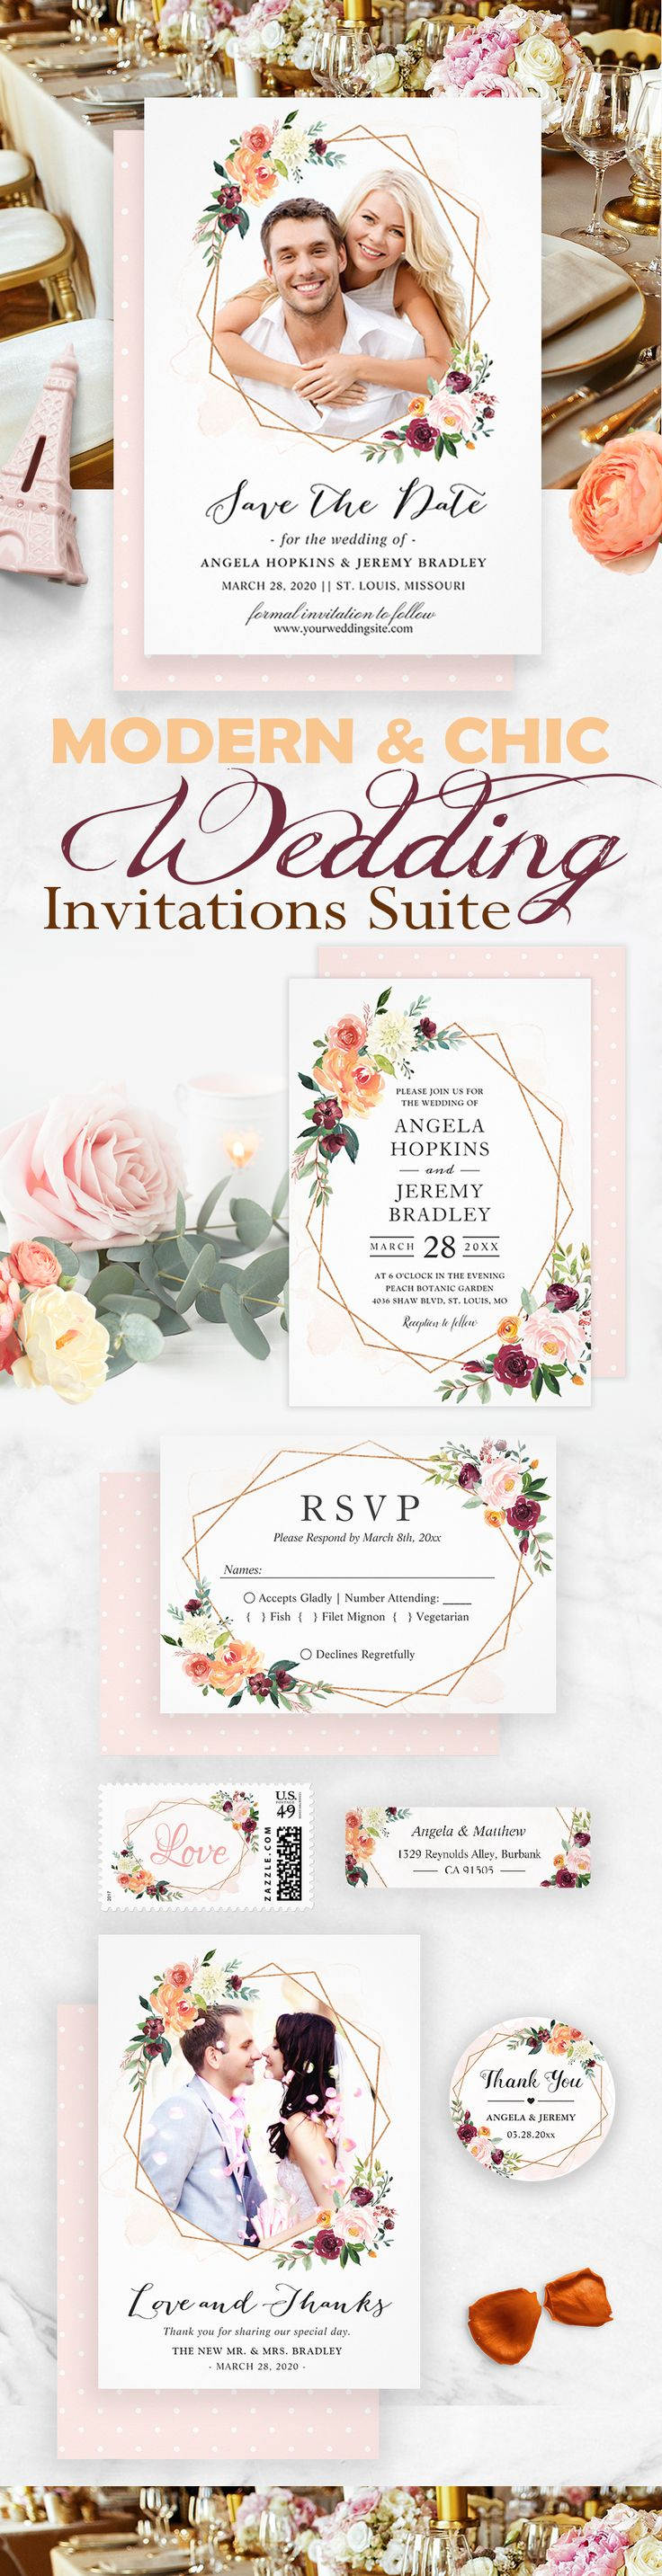 A Modern Geometric Bloom Floral Invitations Suite, with items from Invitations to RSVP card, Thank You Card, Save the Date Card, Information Card and more.